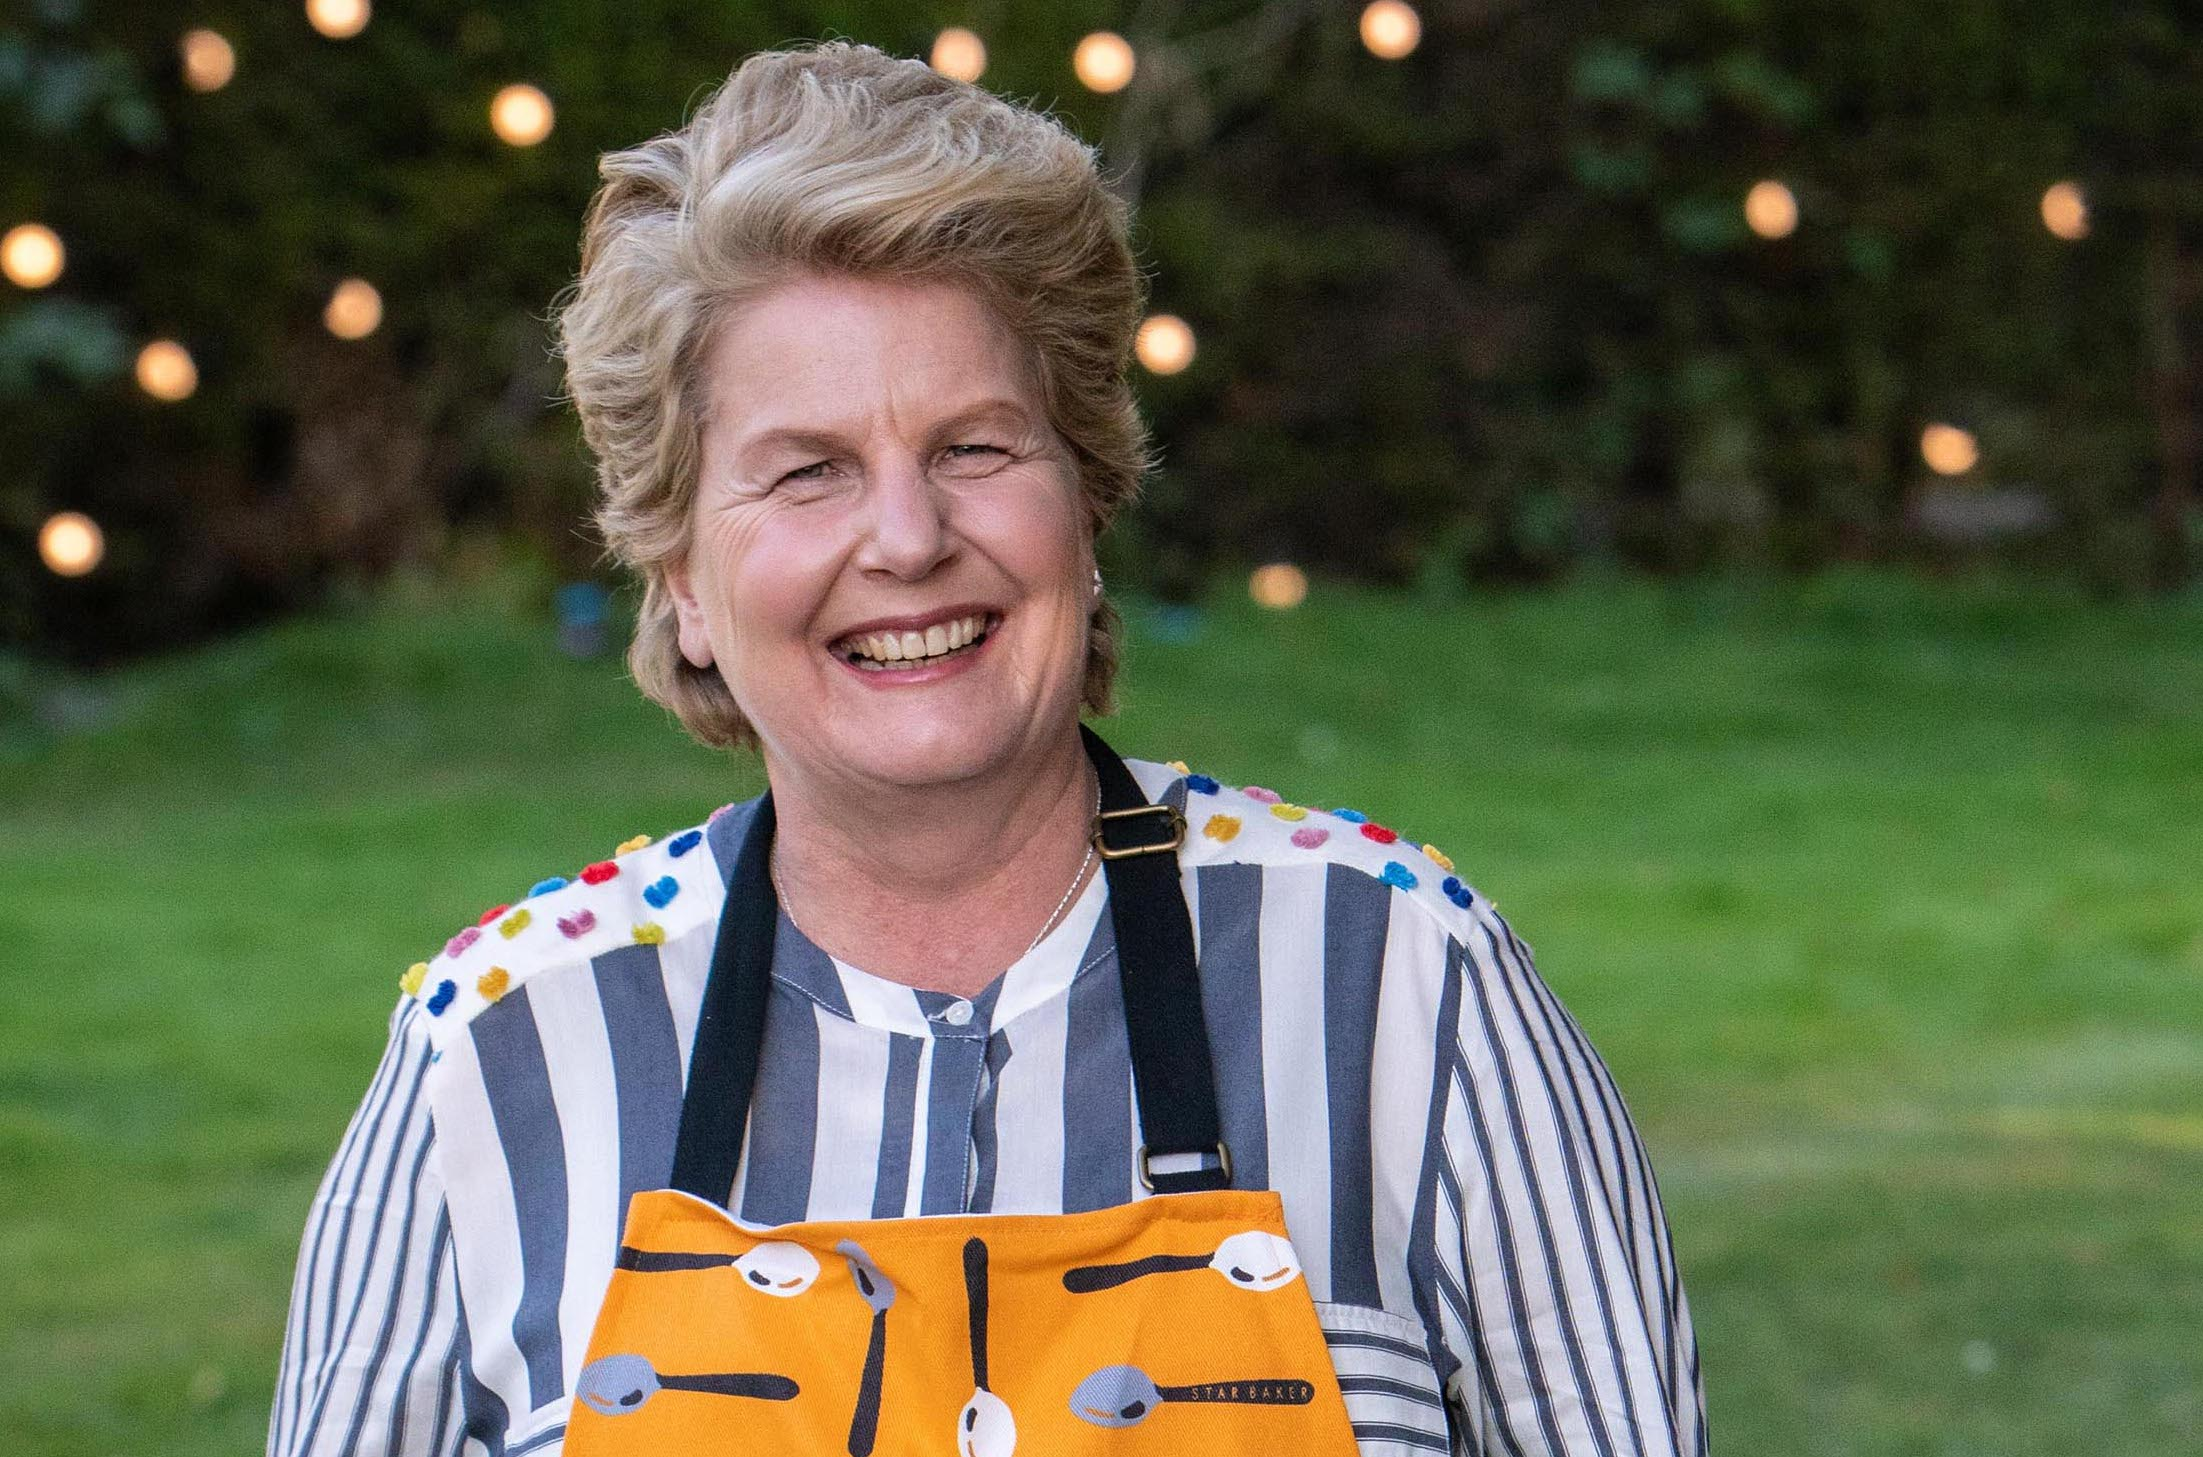 Sandi Toksvig was 'desperate' to leave the Great British Bake Off 'for ages' and 'sparked tensions' behind the scenes